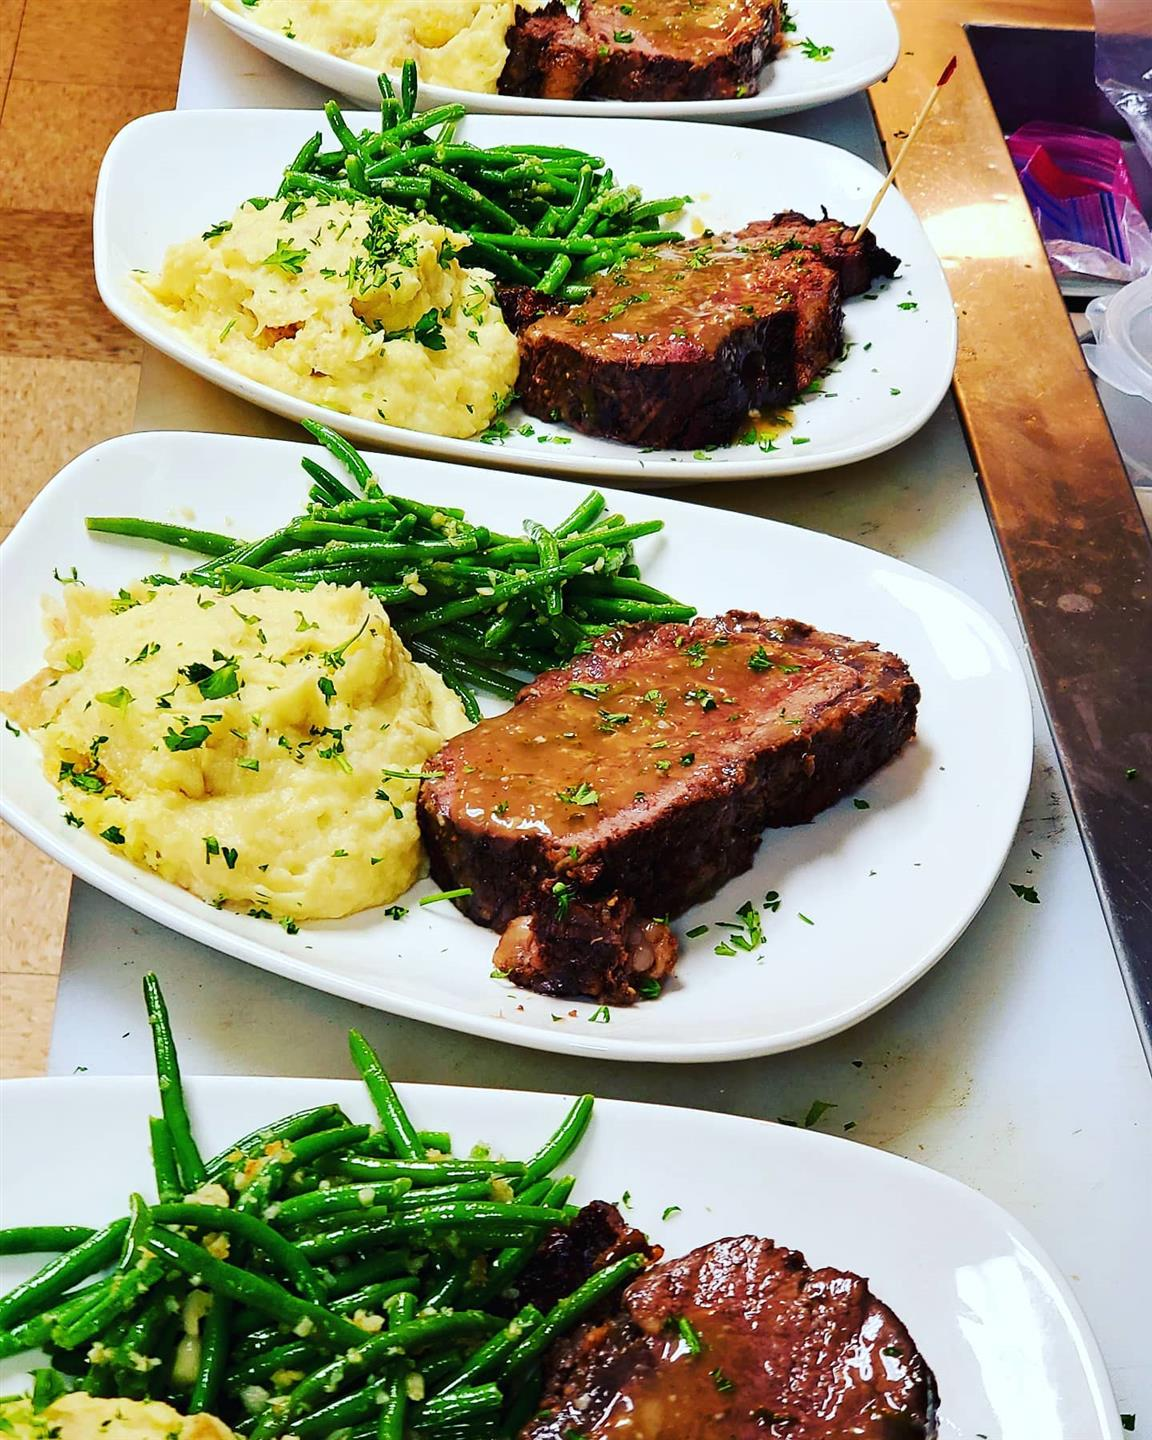 grilled steak with a side of mashed potatoes and green beans